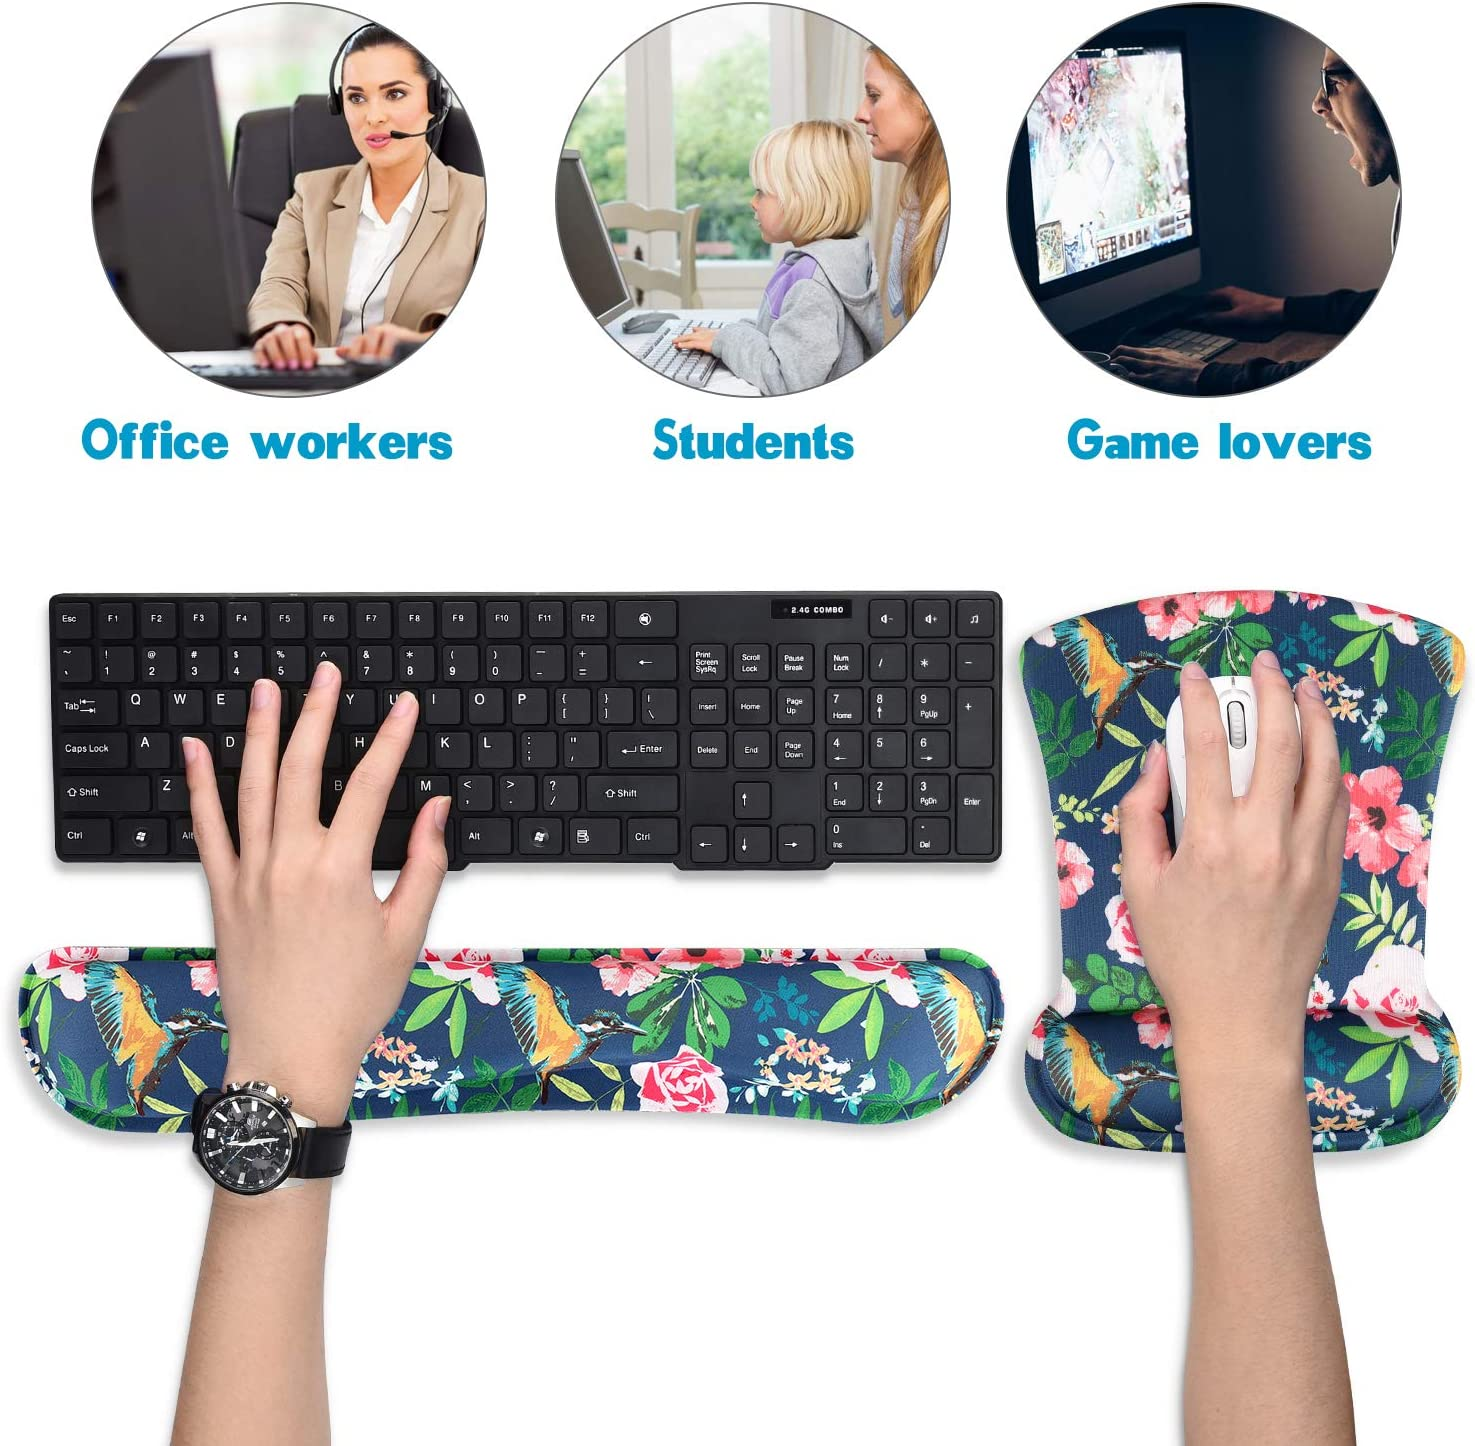 HILUCKI Keyboard Wrist Rest Pad Support Ergonomic Mouse Pad Wrist Support Set Memory Foam Cushion for Computer Laptop Gaming Office Comfortable Durable and Pain Relief MC-007